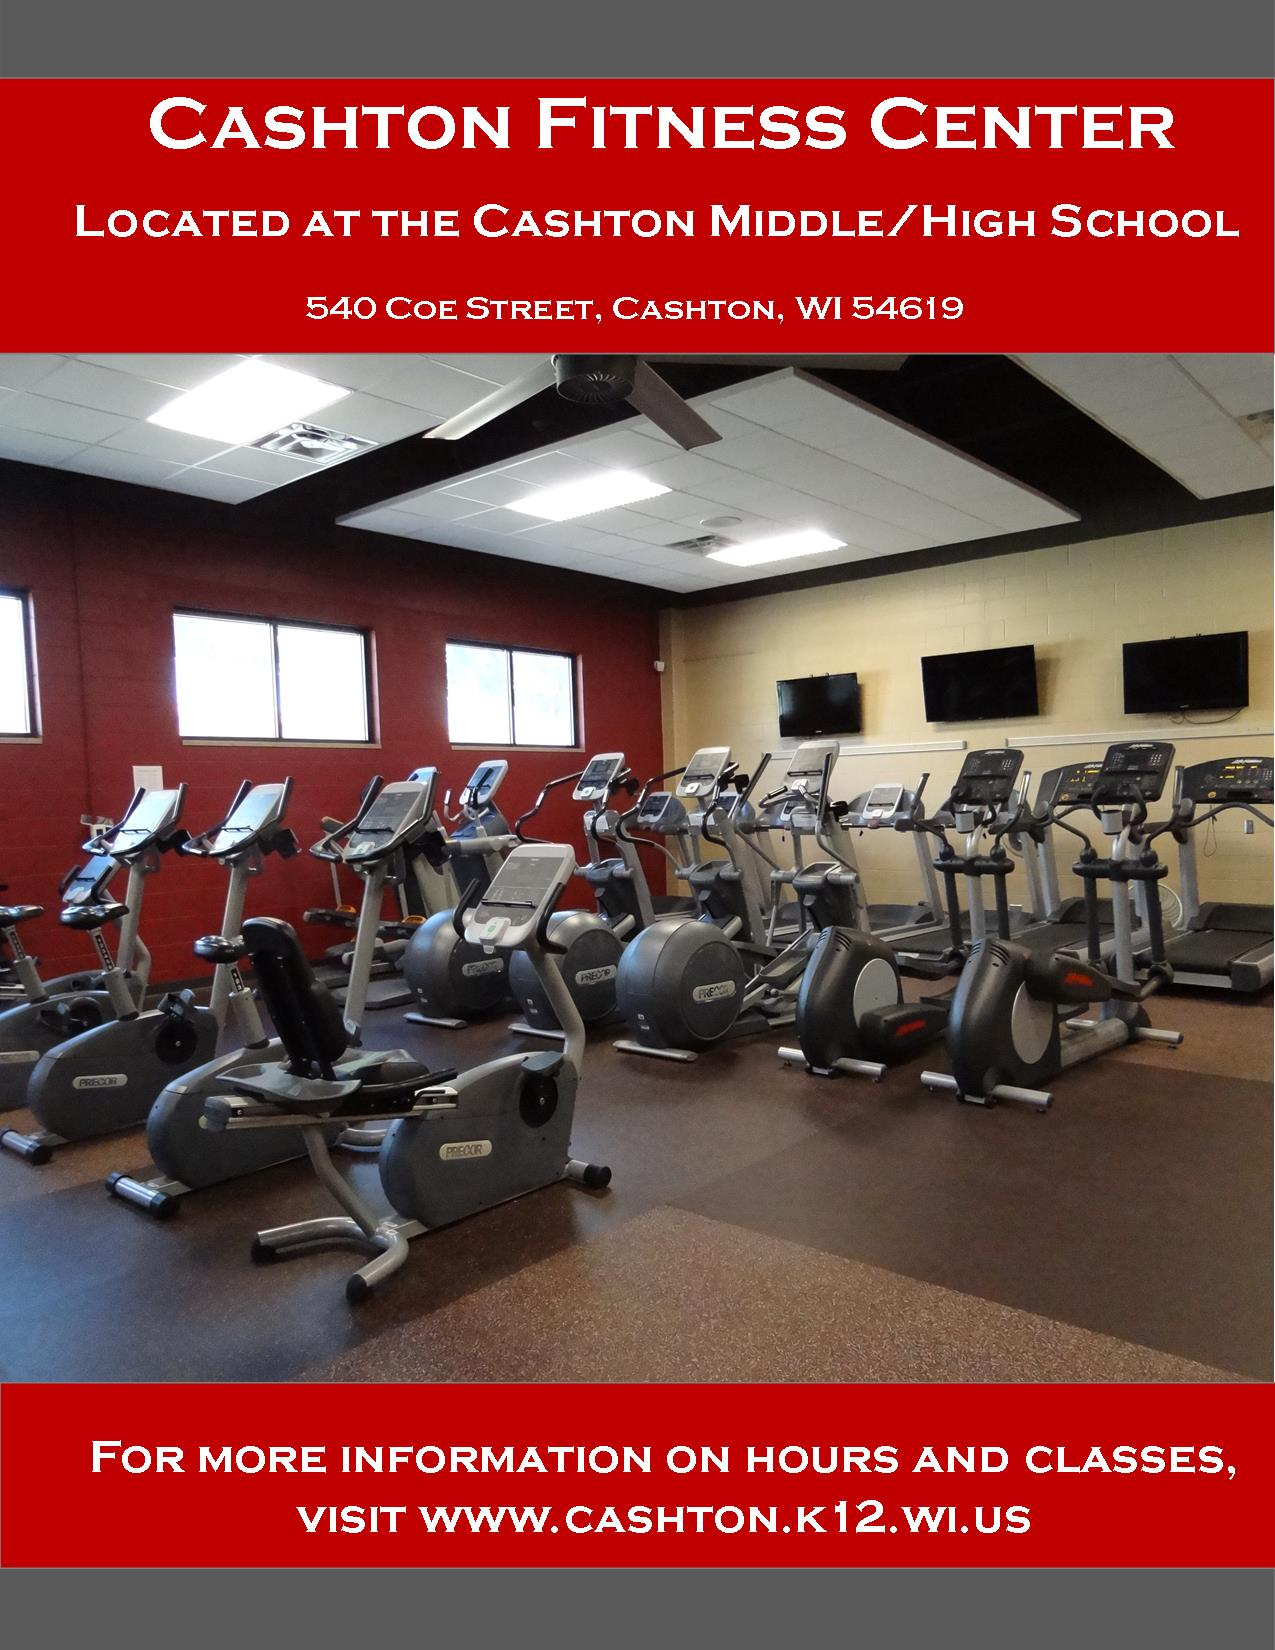 Cashton Fitness Center Classes